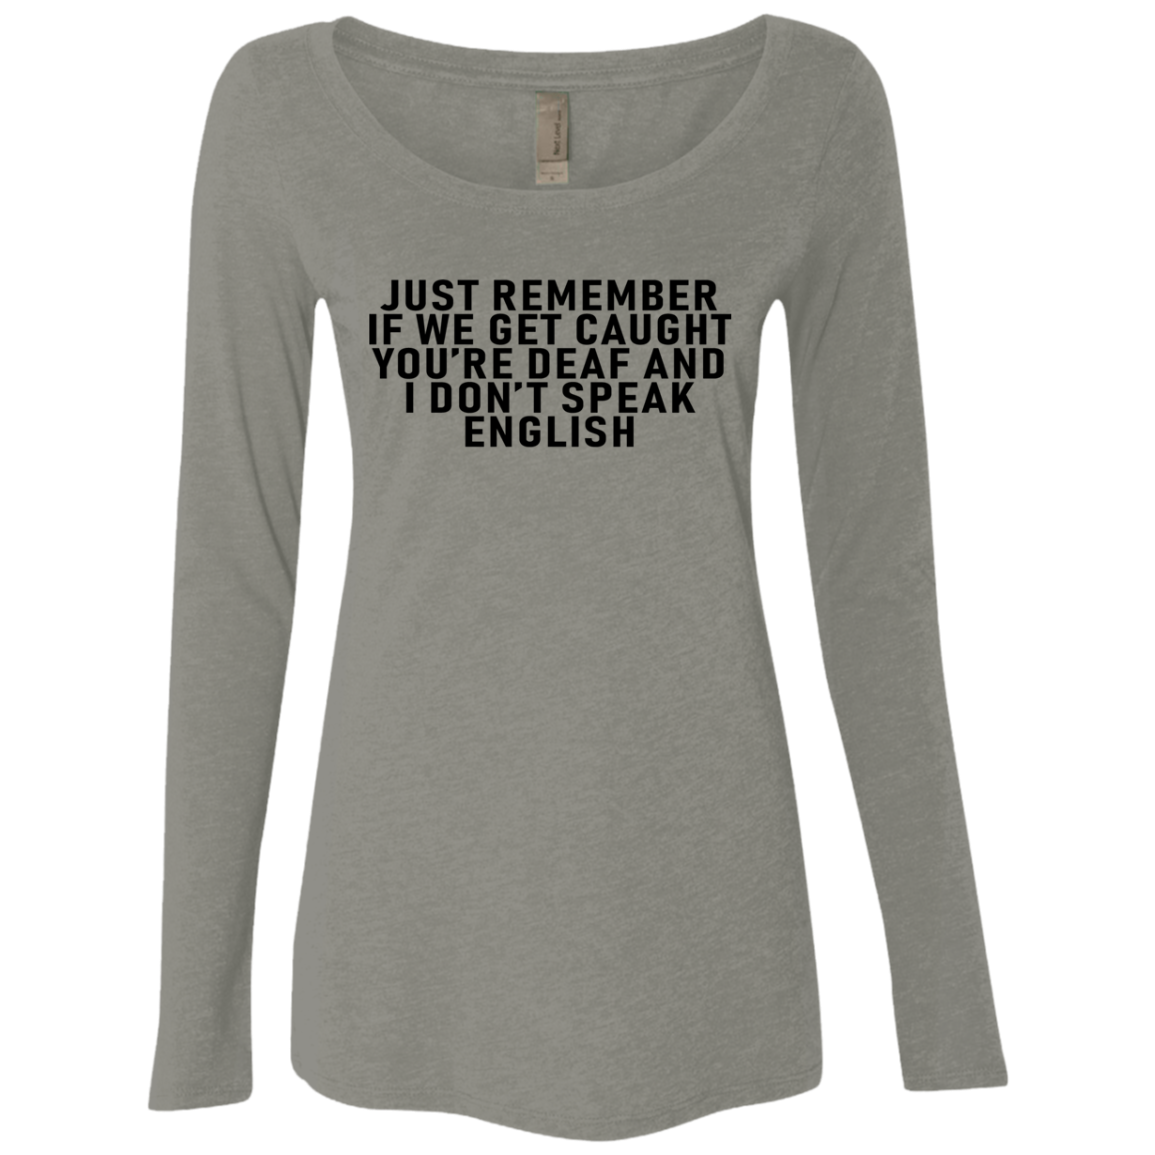 Just Remeber If We Get Caught Yo're Deaf And I Don't Speak English Women's Long Sleeve Tee